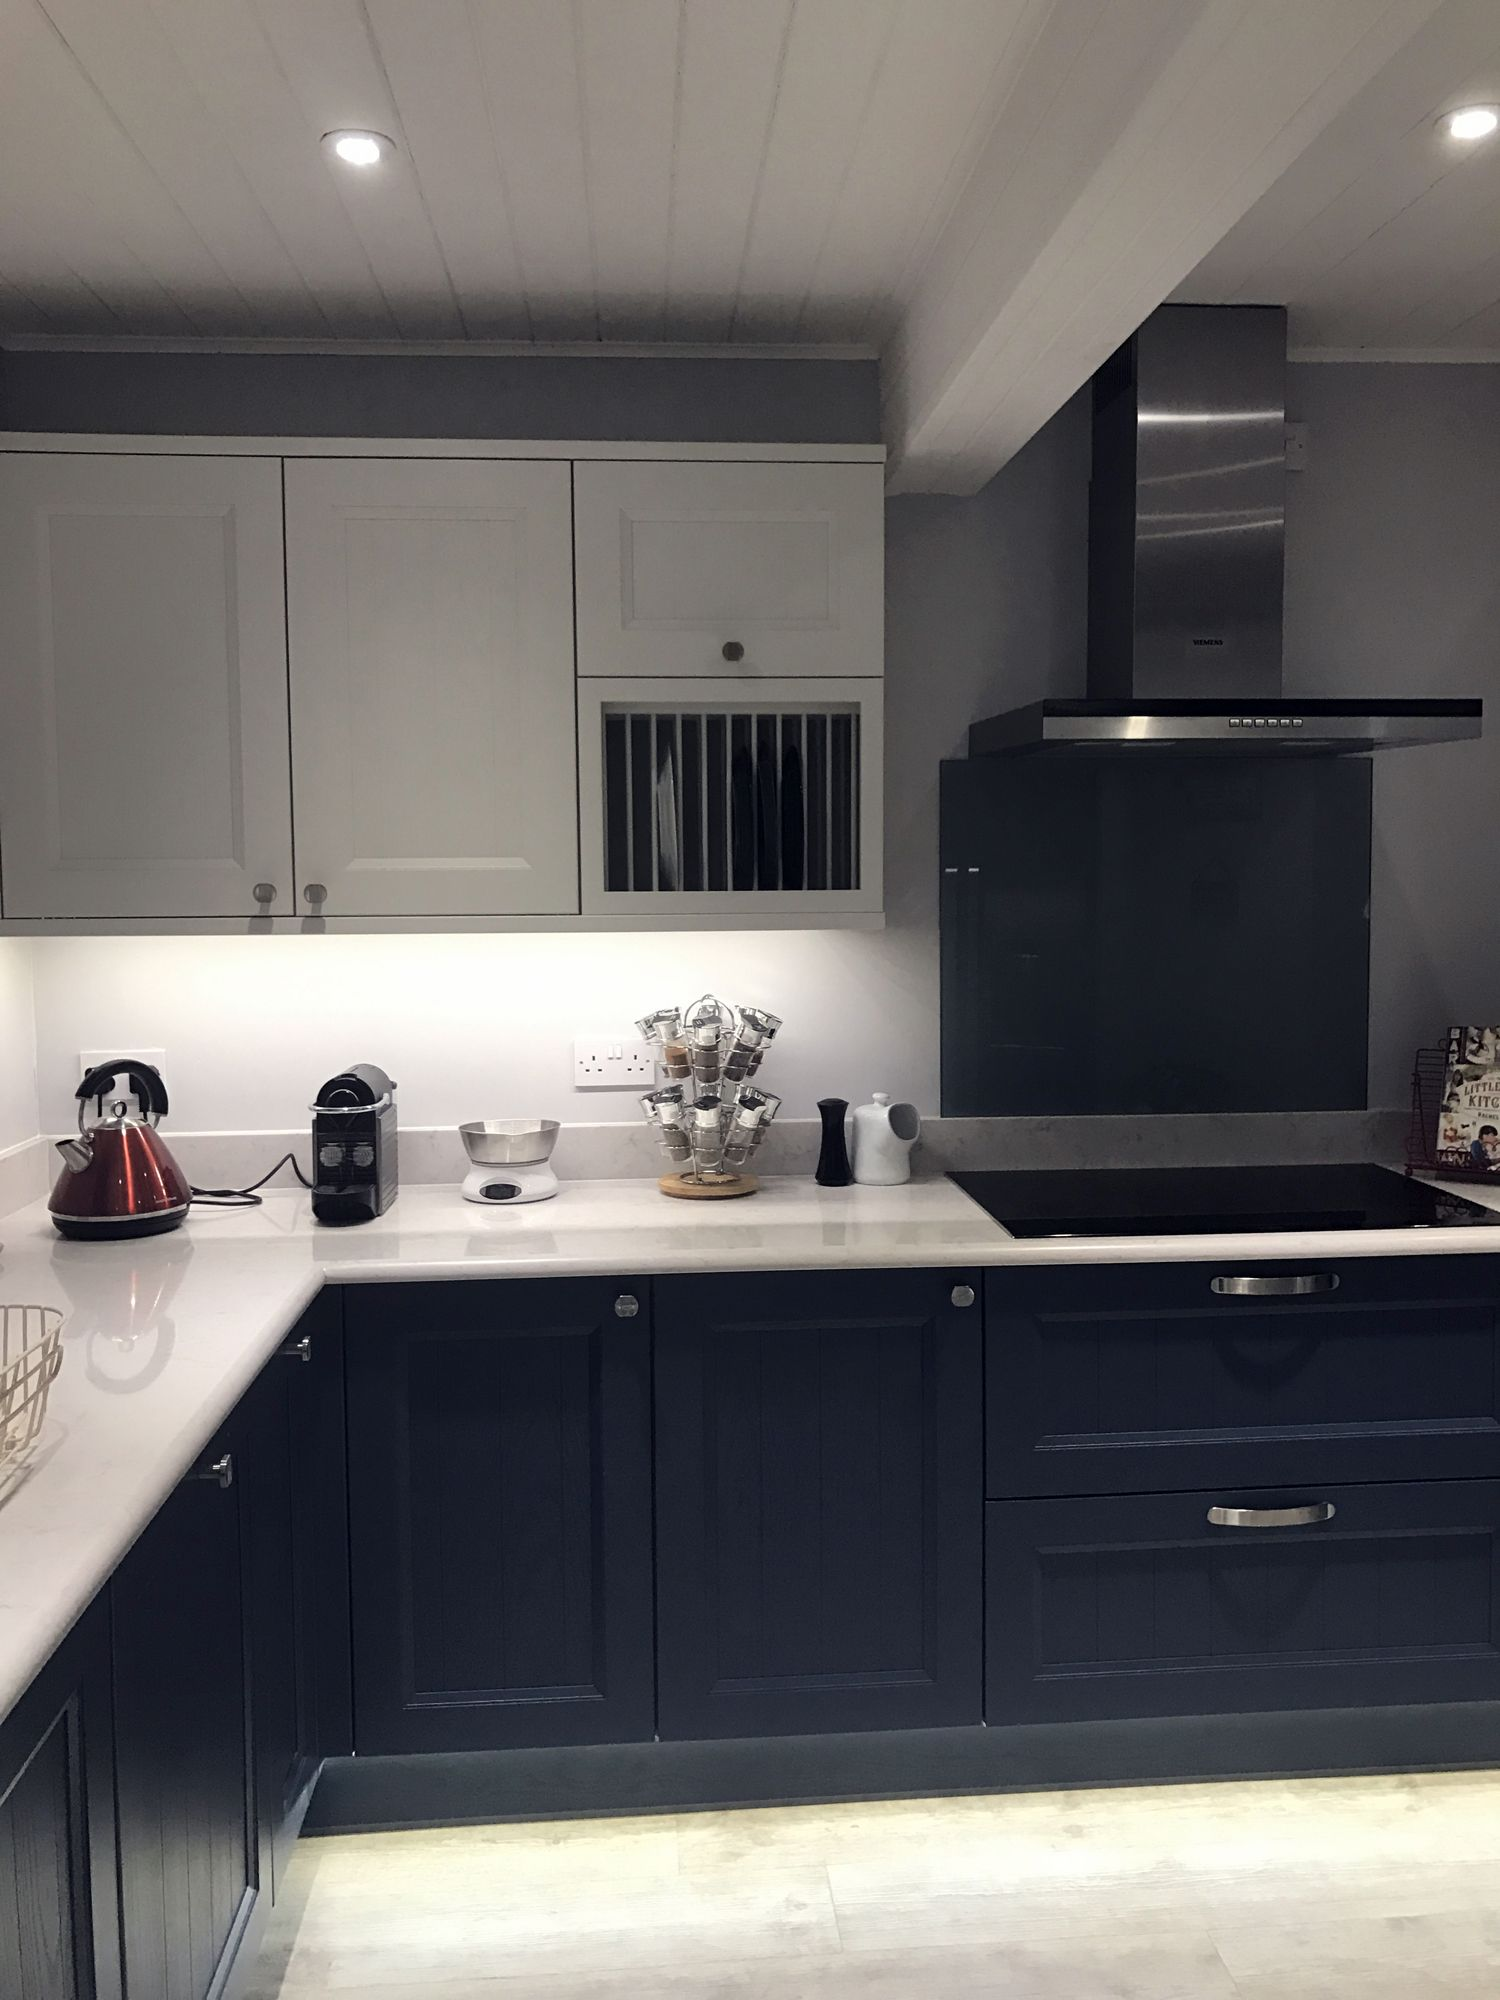 Pin by achieve stylish living on traditional kitchens at asl